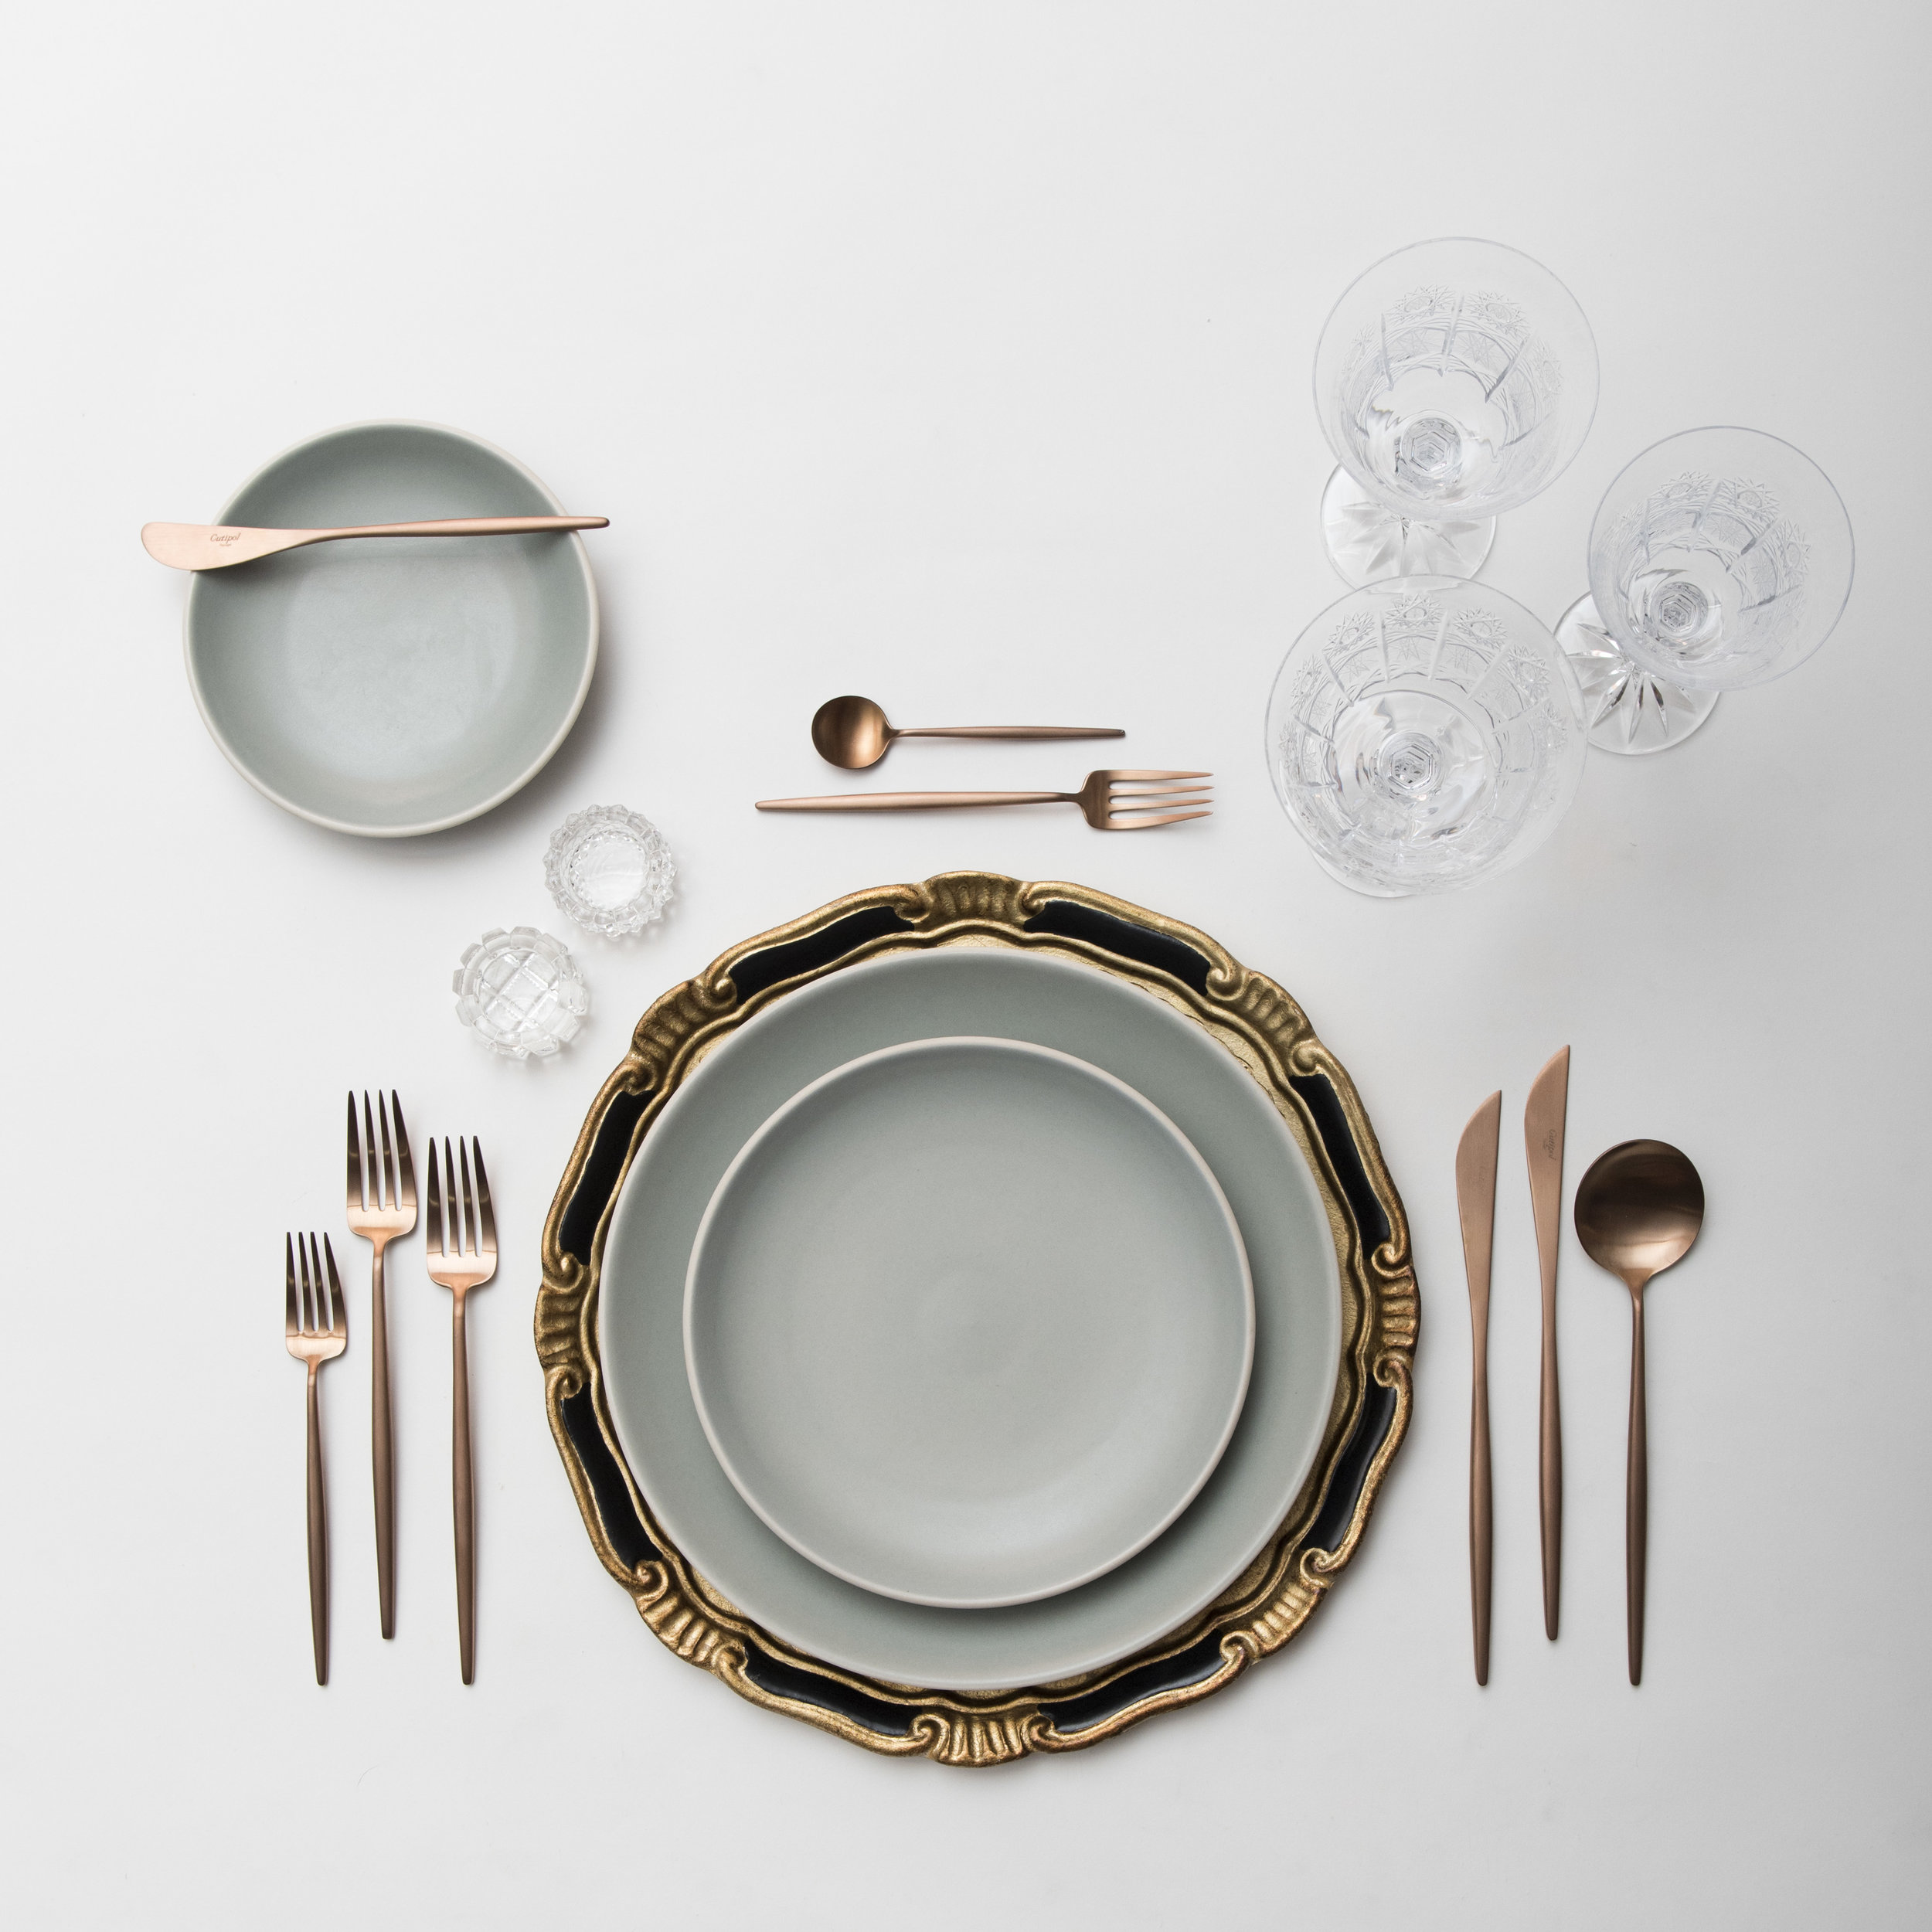 RENT: Florentine Chargers in Black/Gold + Heath Ceramics in Mist + Moon Flatware in Brushed Rose Gold + Czech Crystal Stemware + Antique Crystal Salt Cellars  SHOP: Florentine Chargers in Black/Gold + Moon Flatware in Brushed Rose Gold